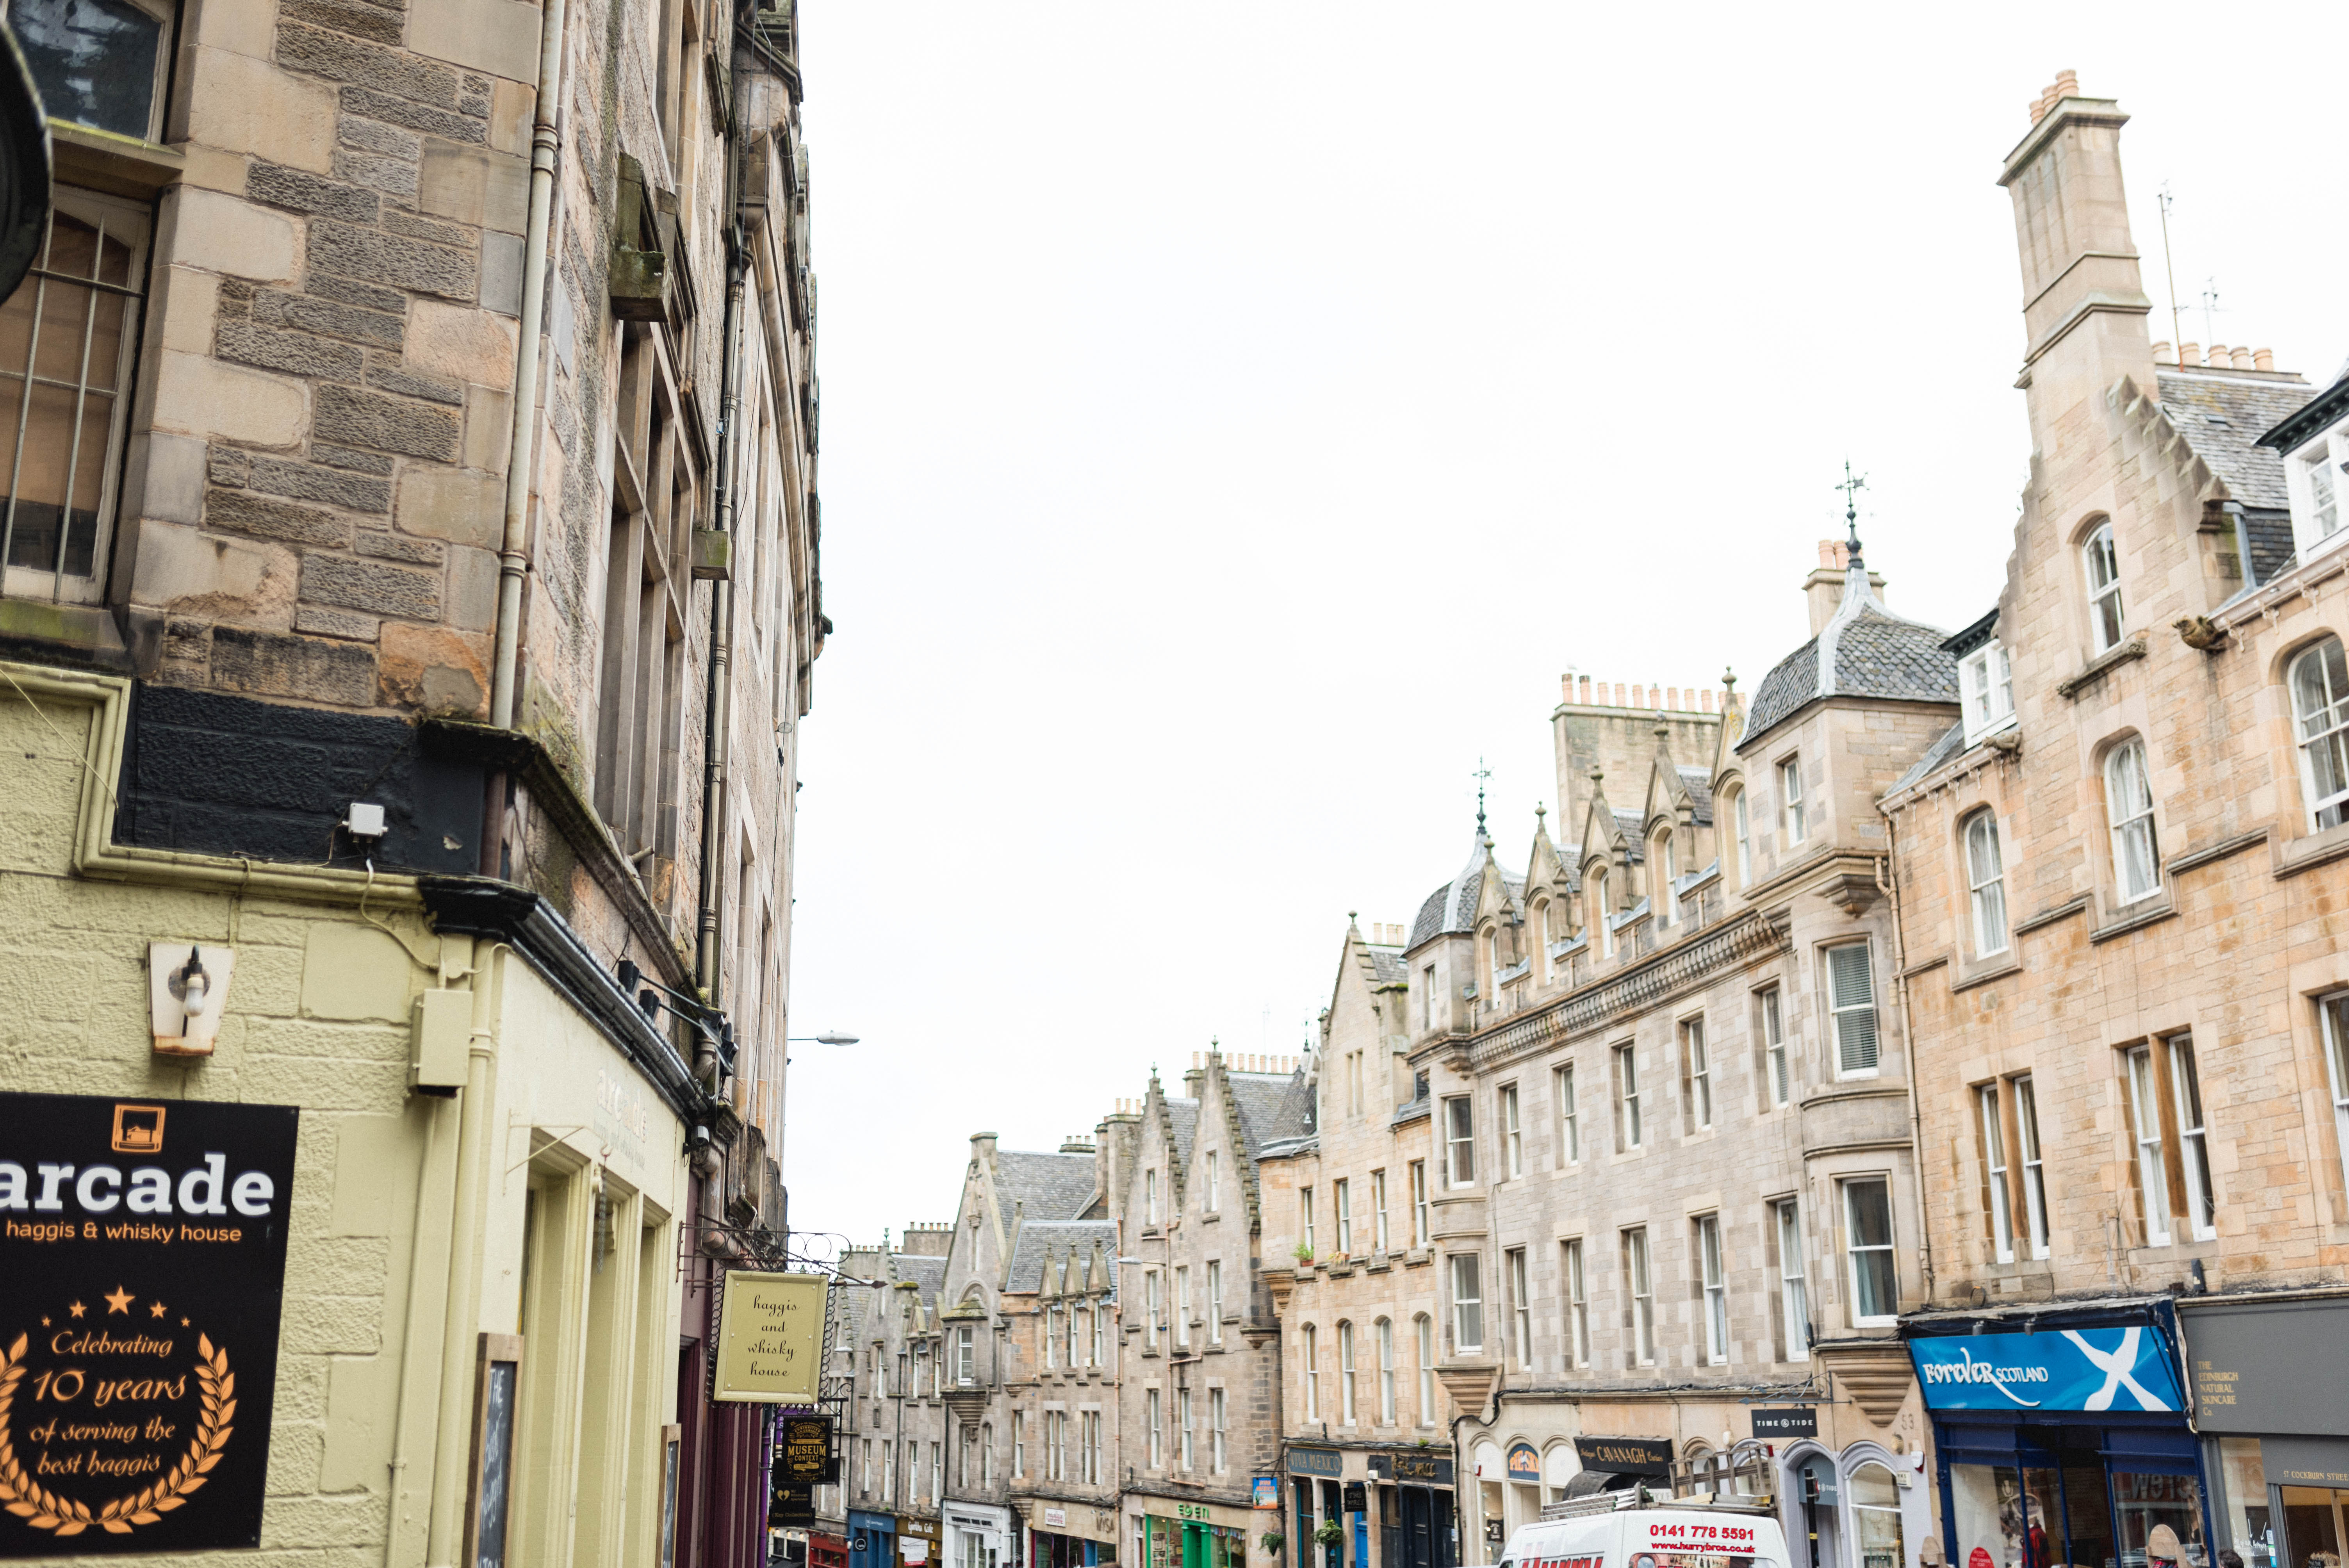 The streets of downtown Edinburgh, a city that dates back to the 1300s, are legendary. (Photo: Flytographer Jilly in Edinburgh, Scotland)